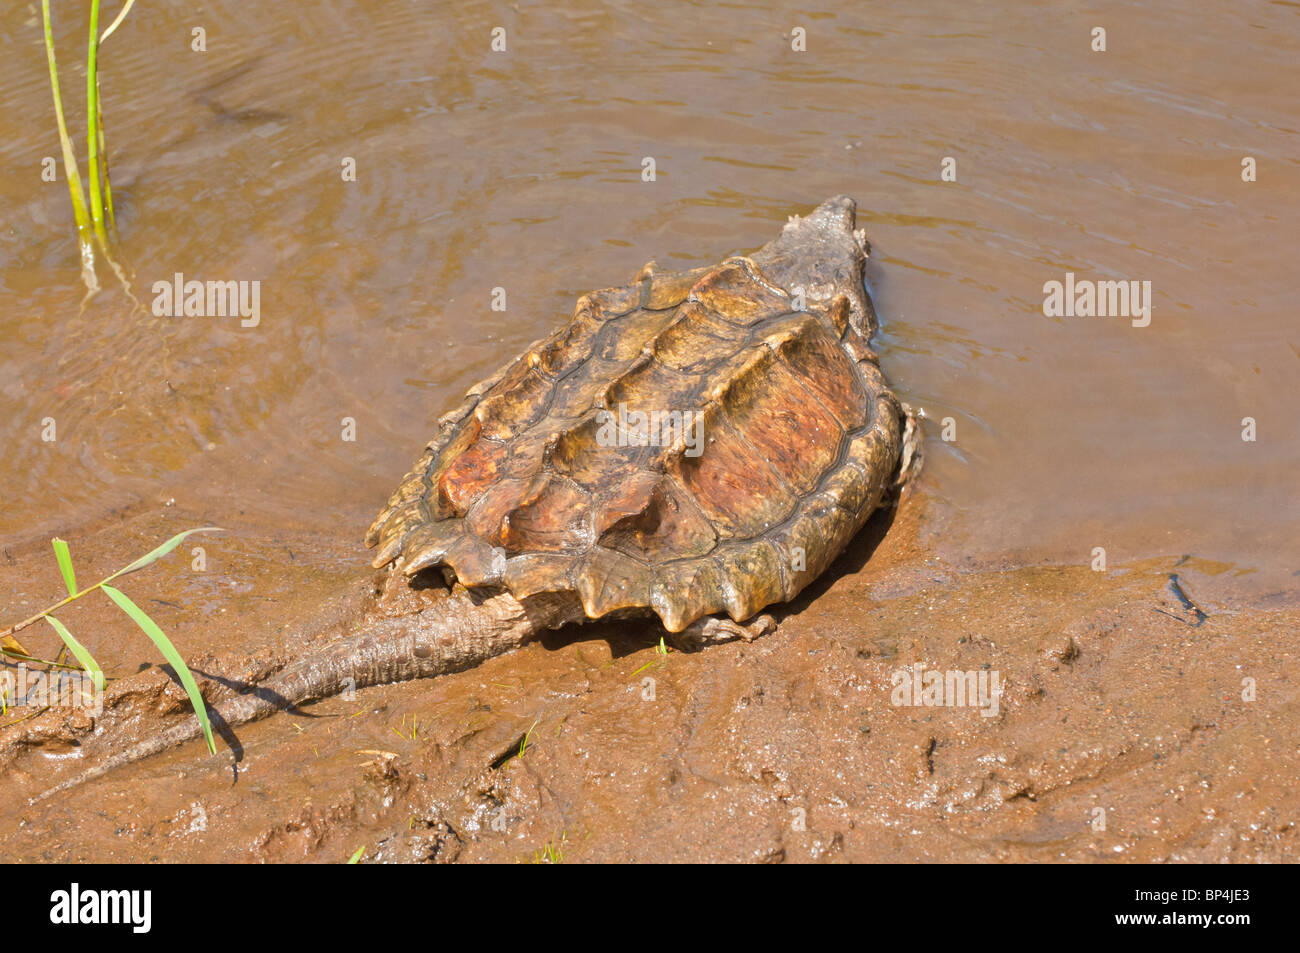 Alligator Snapping Turtle Stock Photos & Alligator Snapping